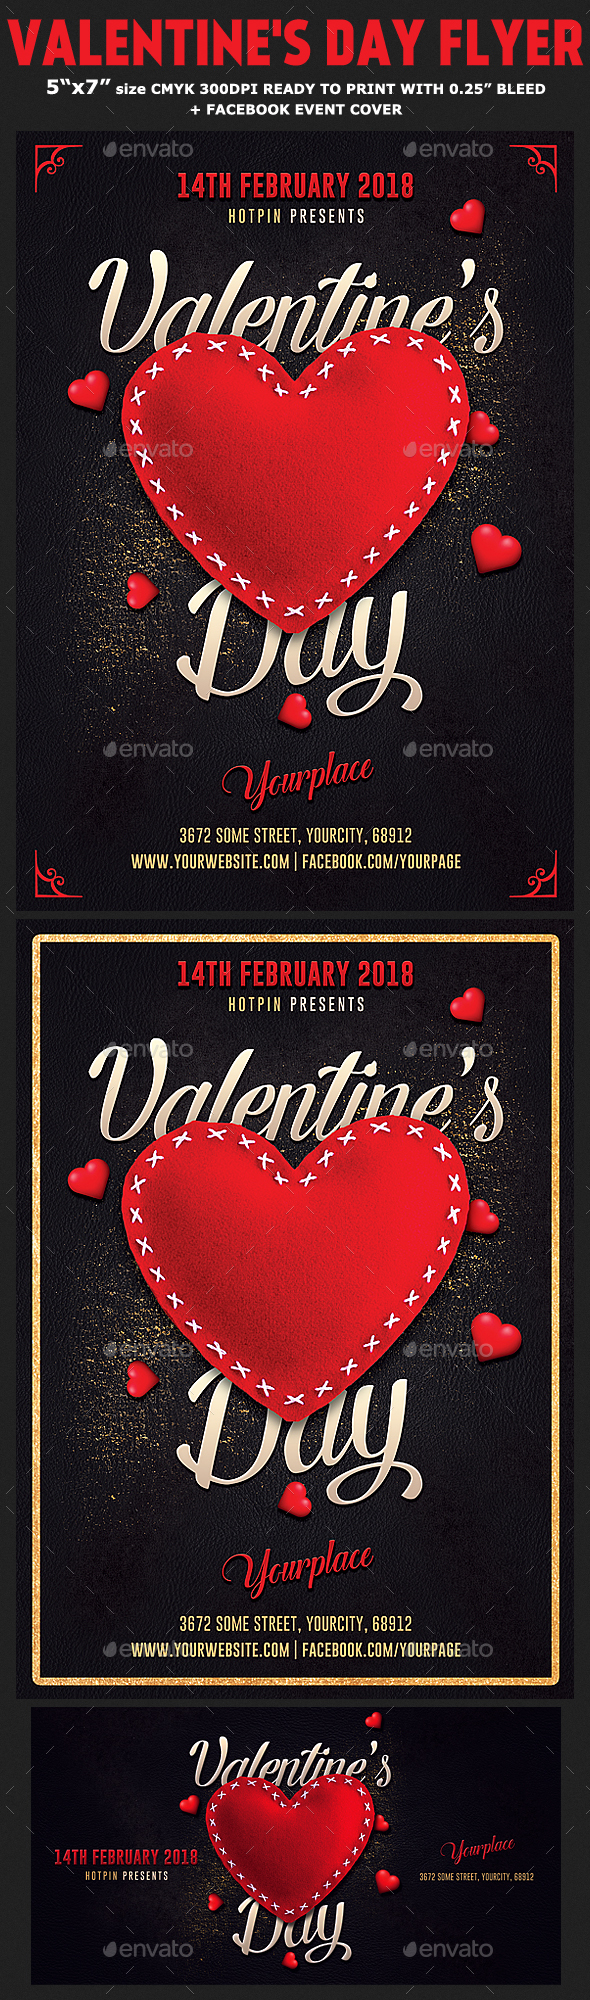 Valentines Day Flyer Invitation Template By Hotpin GraphicRiver - Valentine's day invitation template